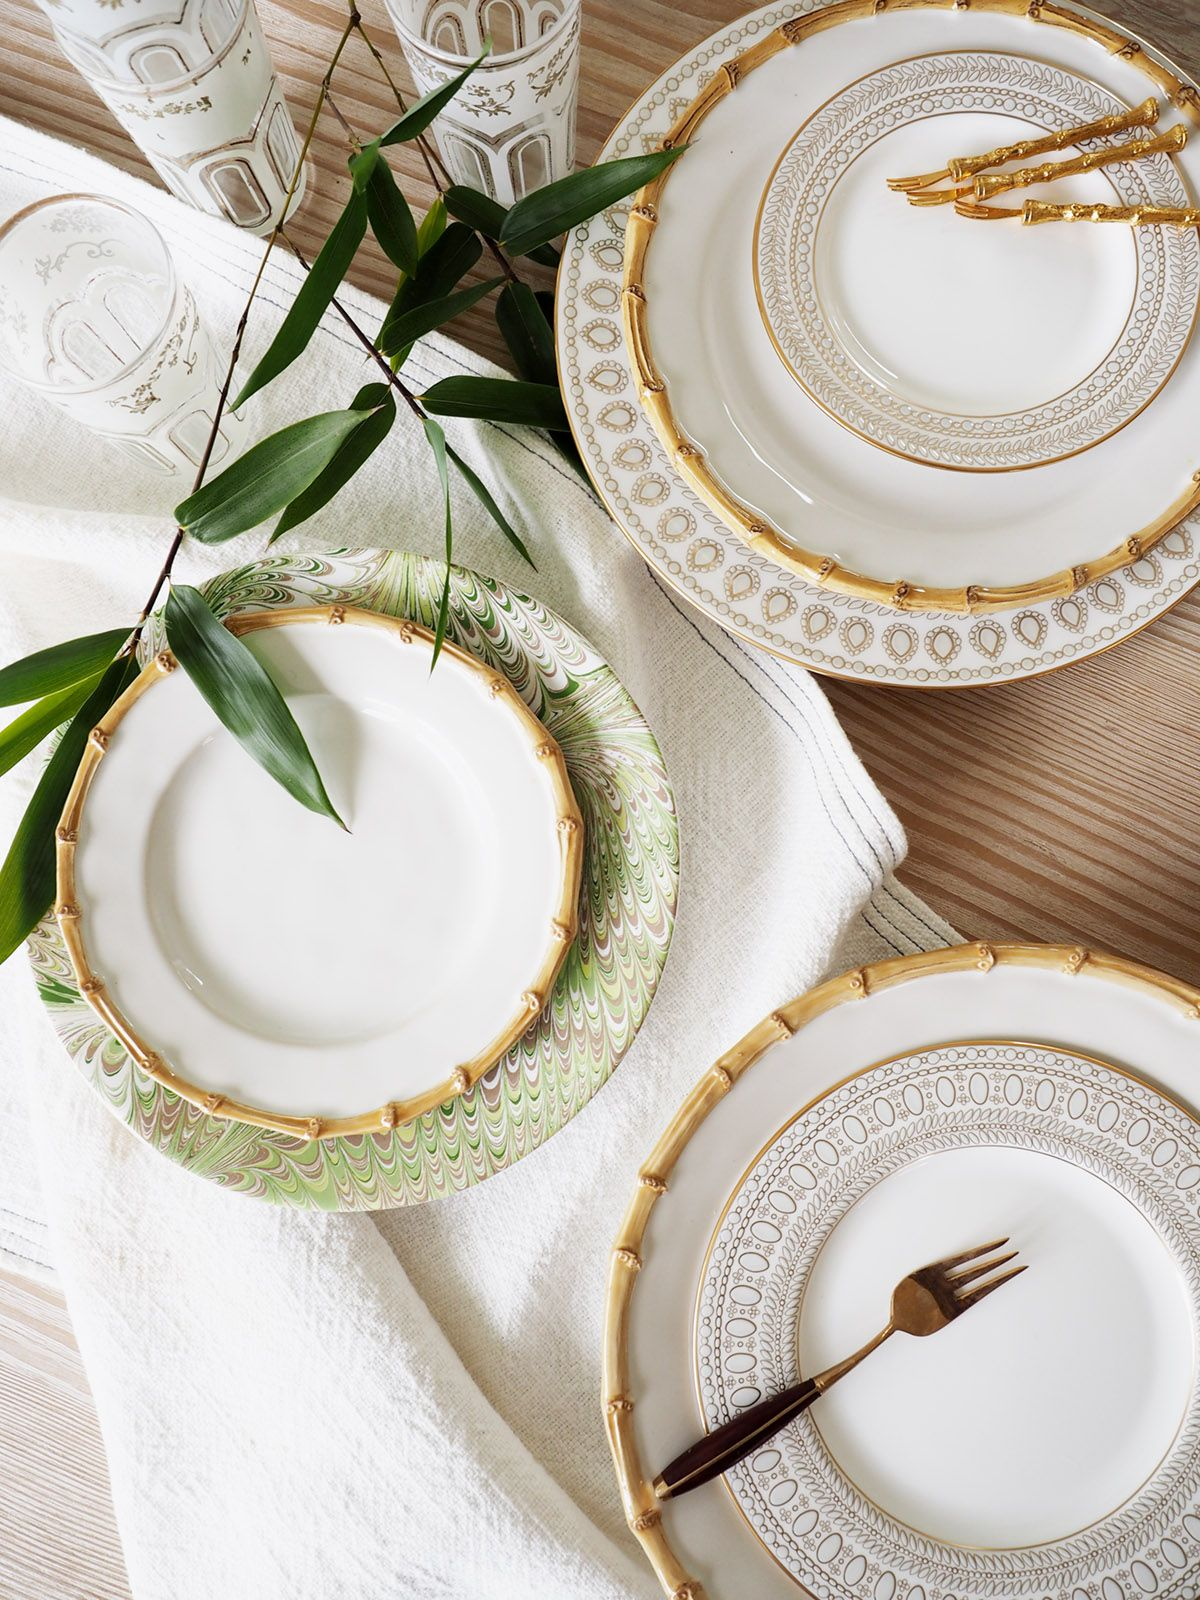 How To Mix N Match China For A Modern Registry Wedding China China Plates Bamboo Dishes